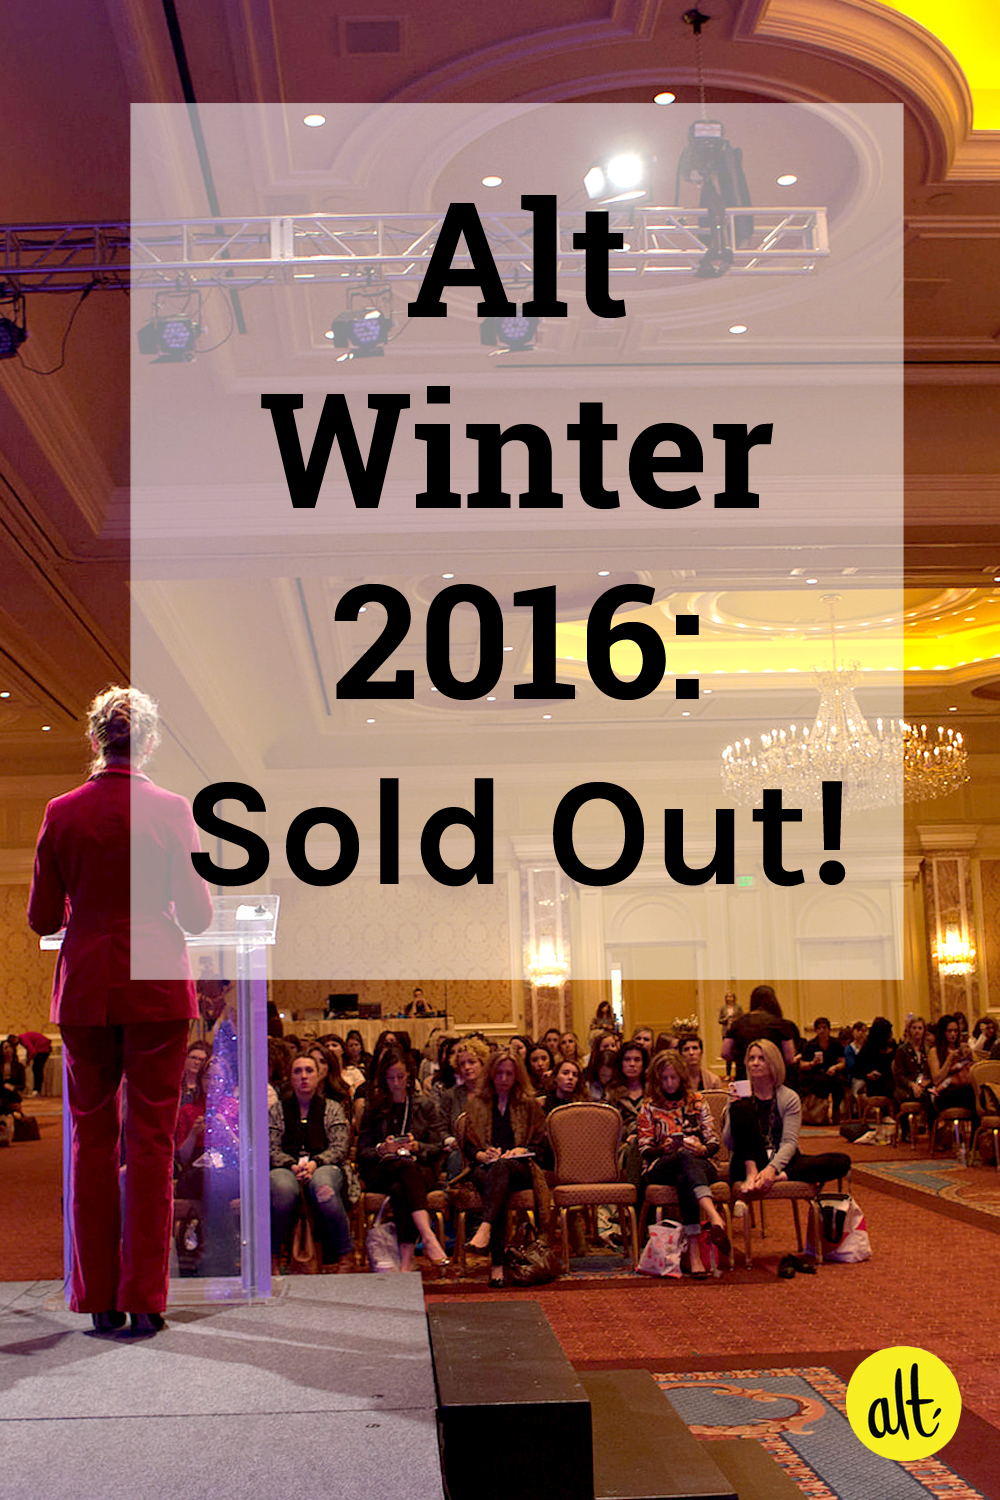 Alt Winter 2016 in SLC is officially sold out!